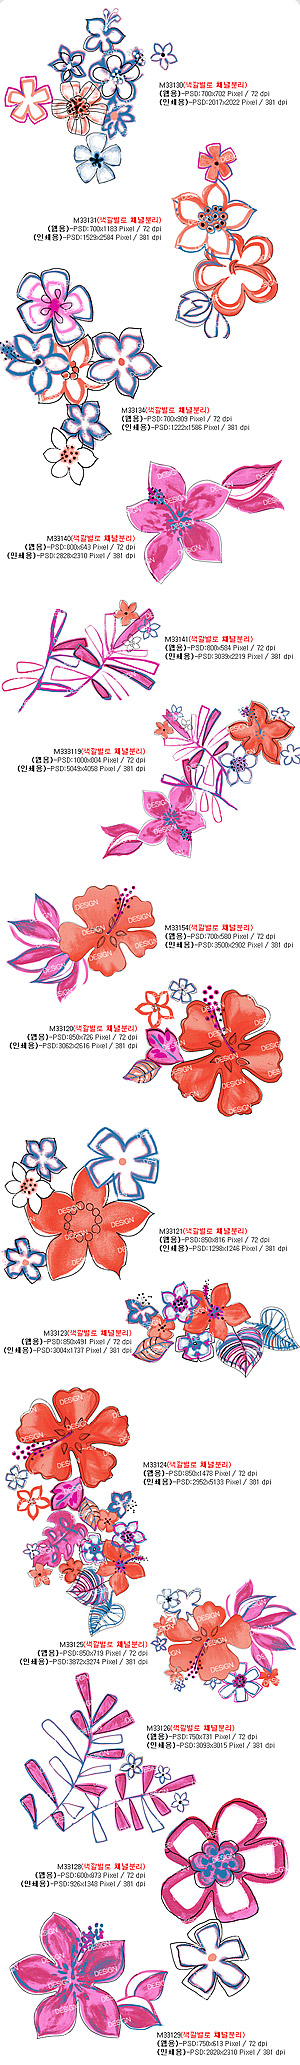 Artcity hand painted fashion flowers pattern psd layered material